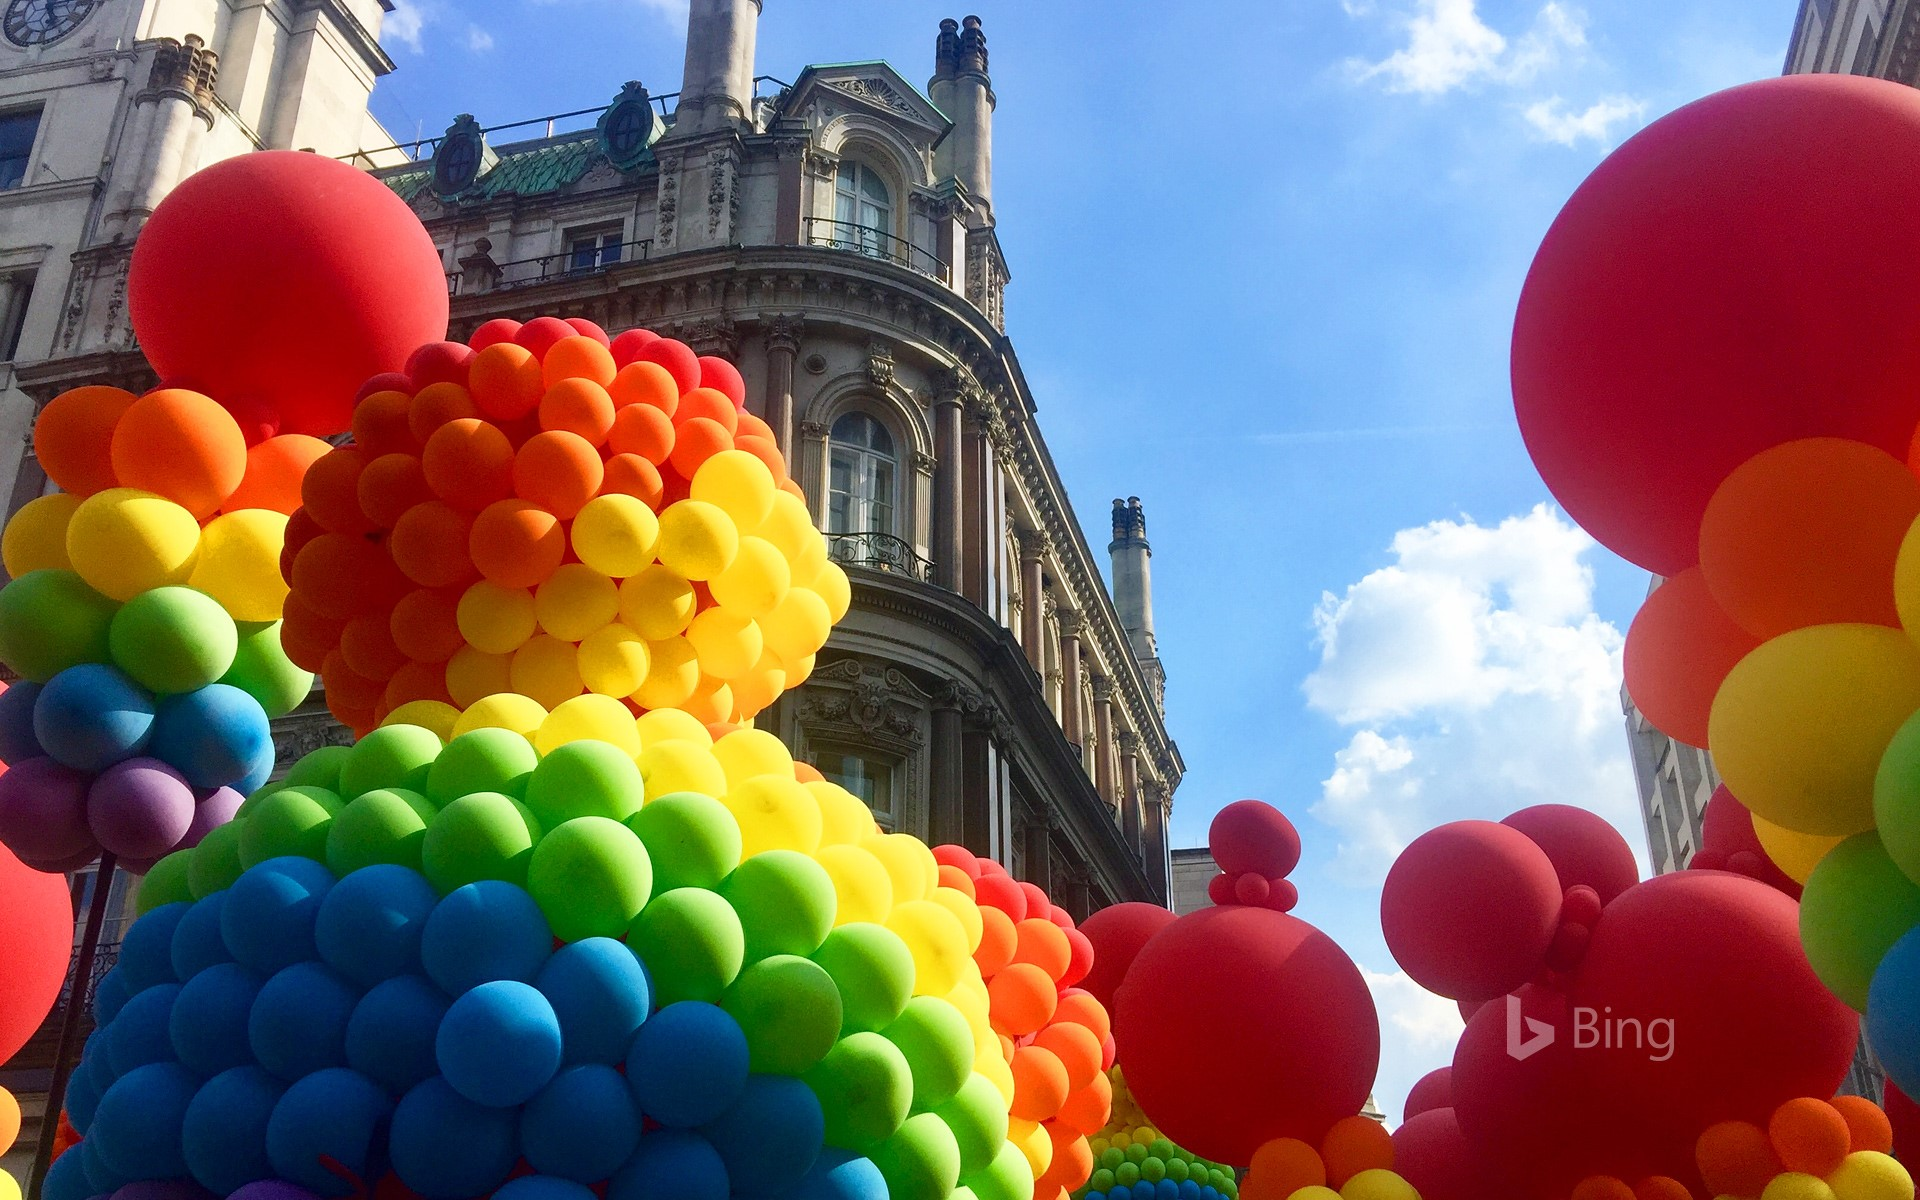 Rainbow-coloured balloons at the Pride in London parade (© darko m/Shutterstock)